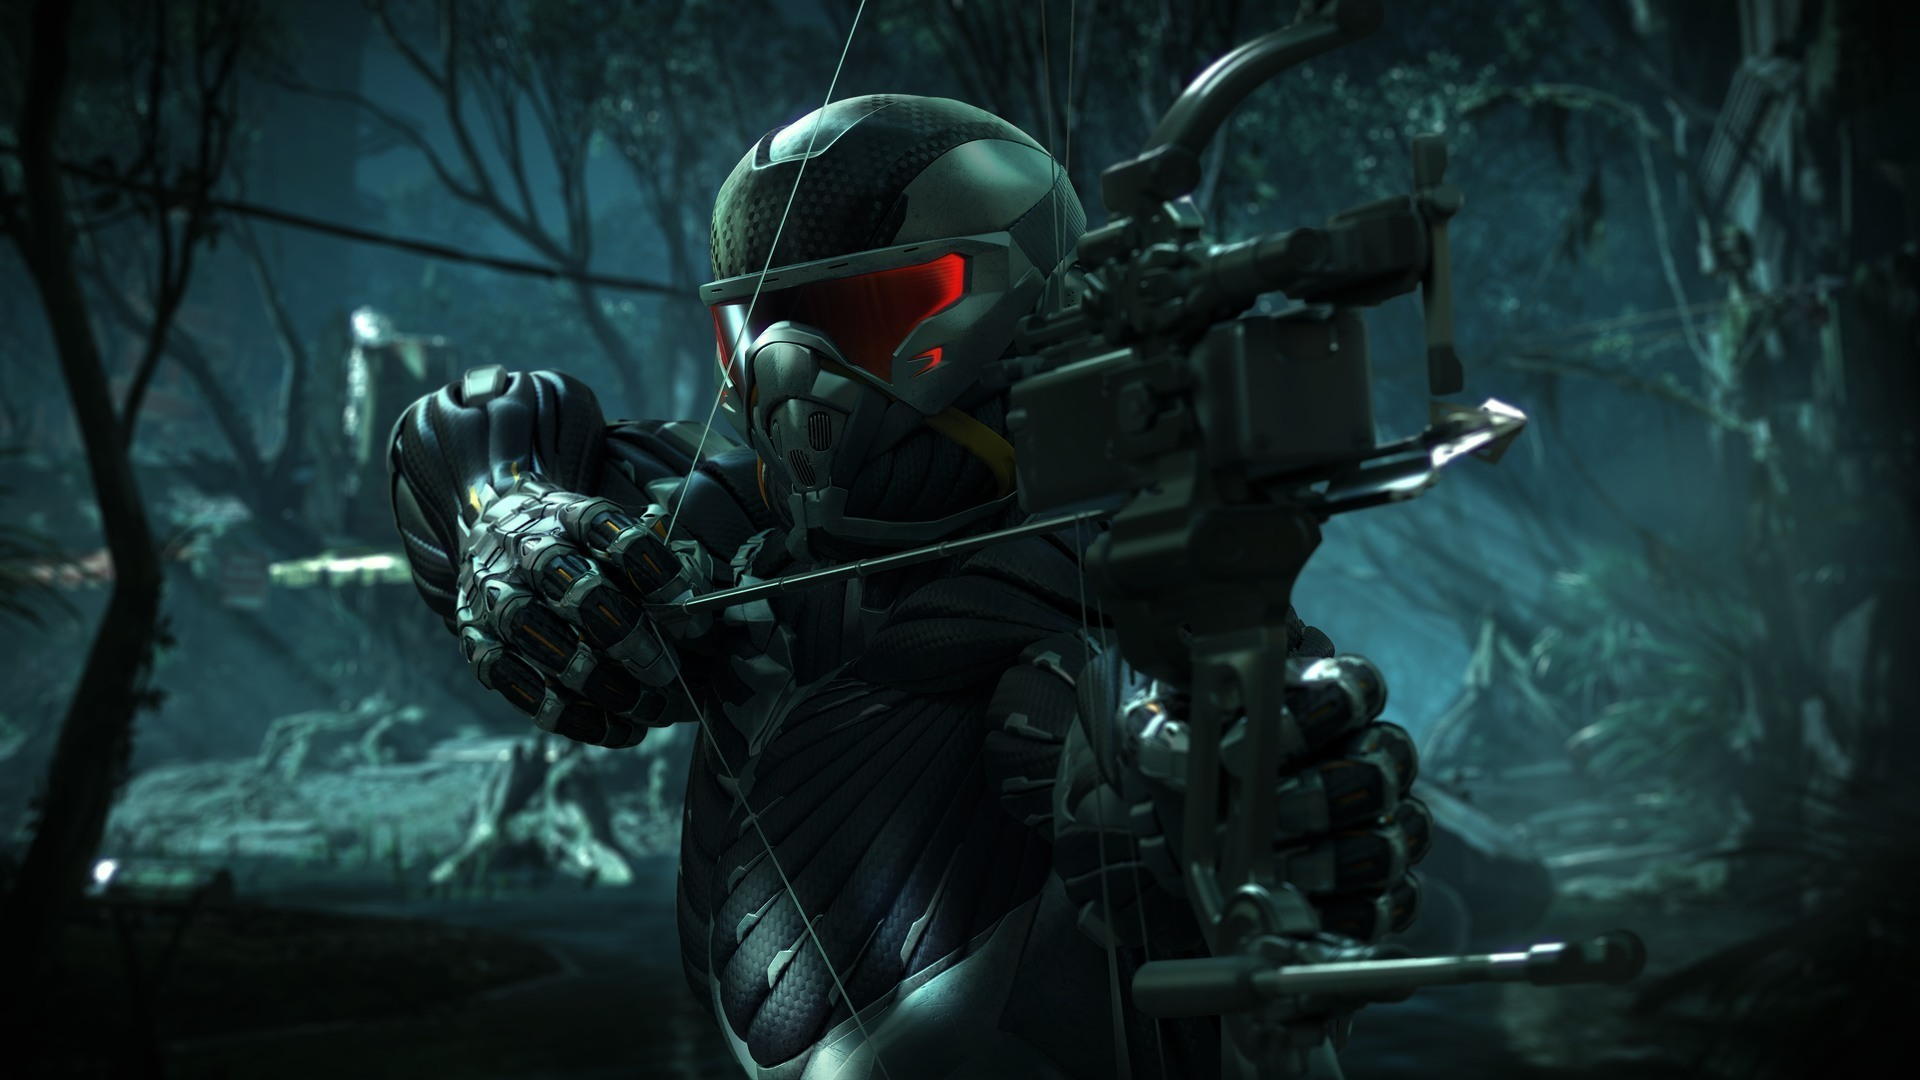 39386 download wallpaper Games, Crysis screensavers and pictures for free